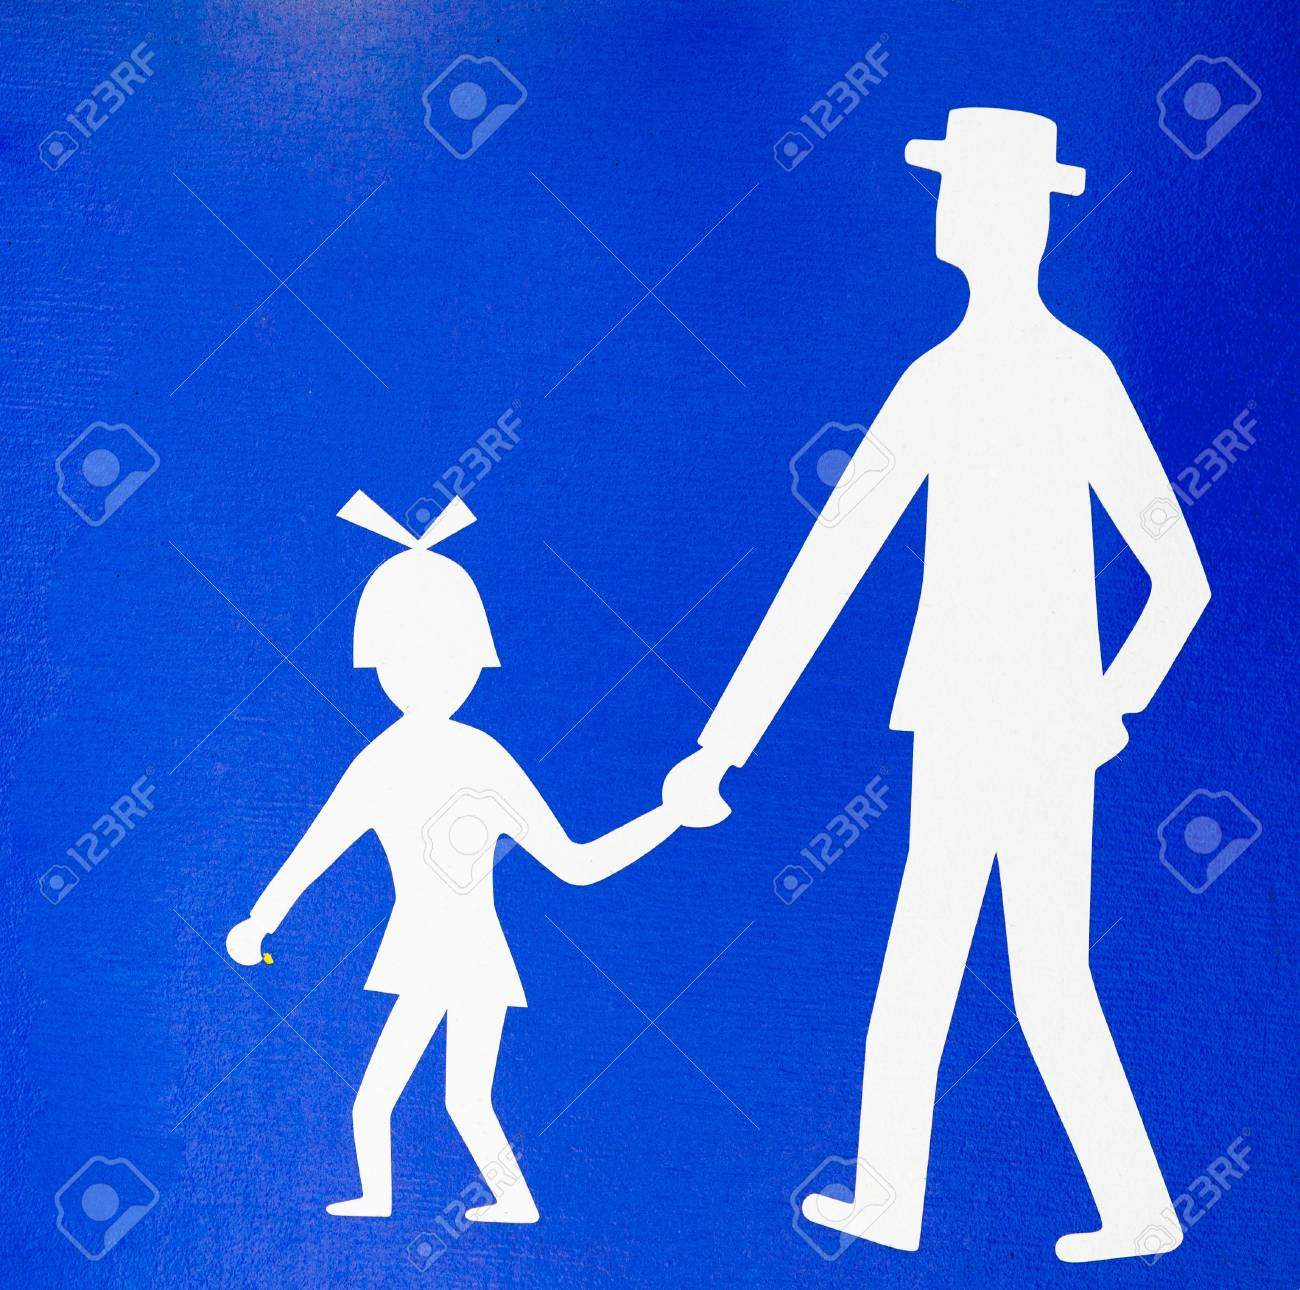 parental guidance concept Stock Photo - 18592563